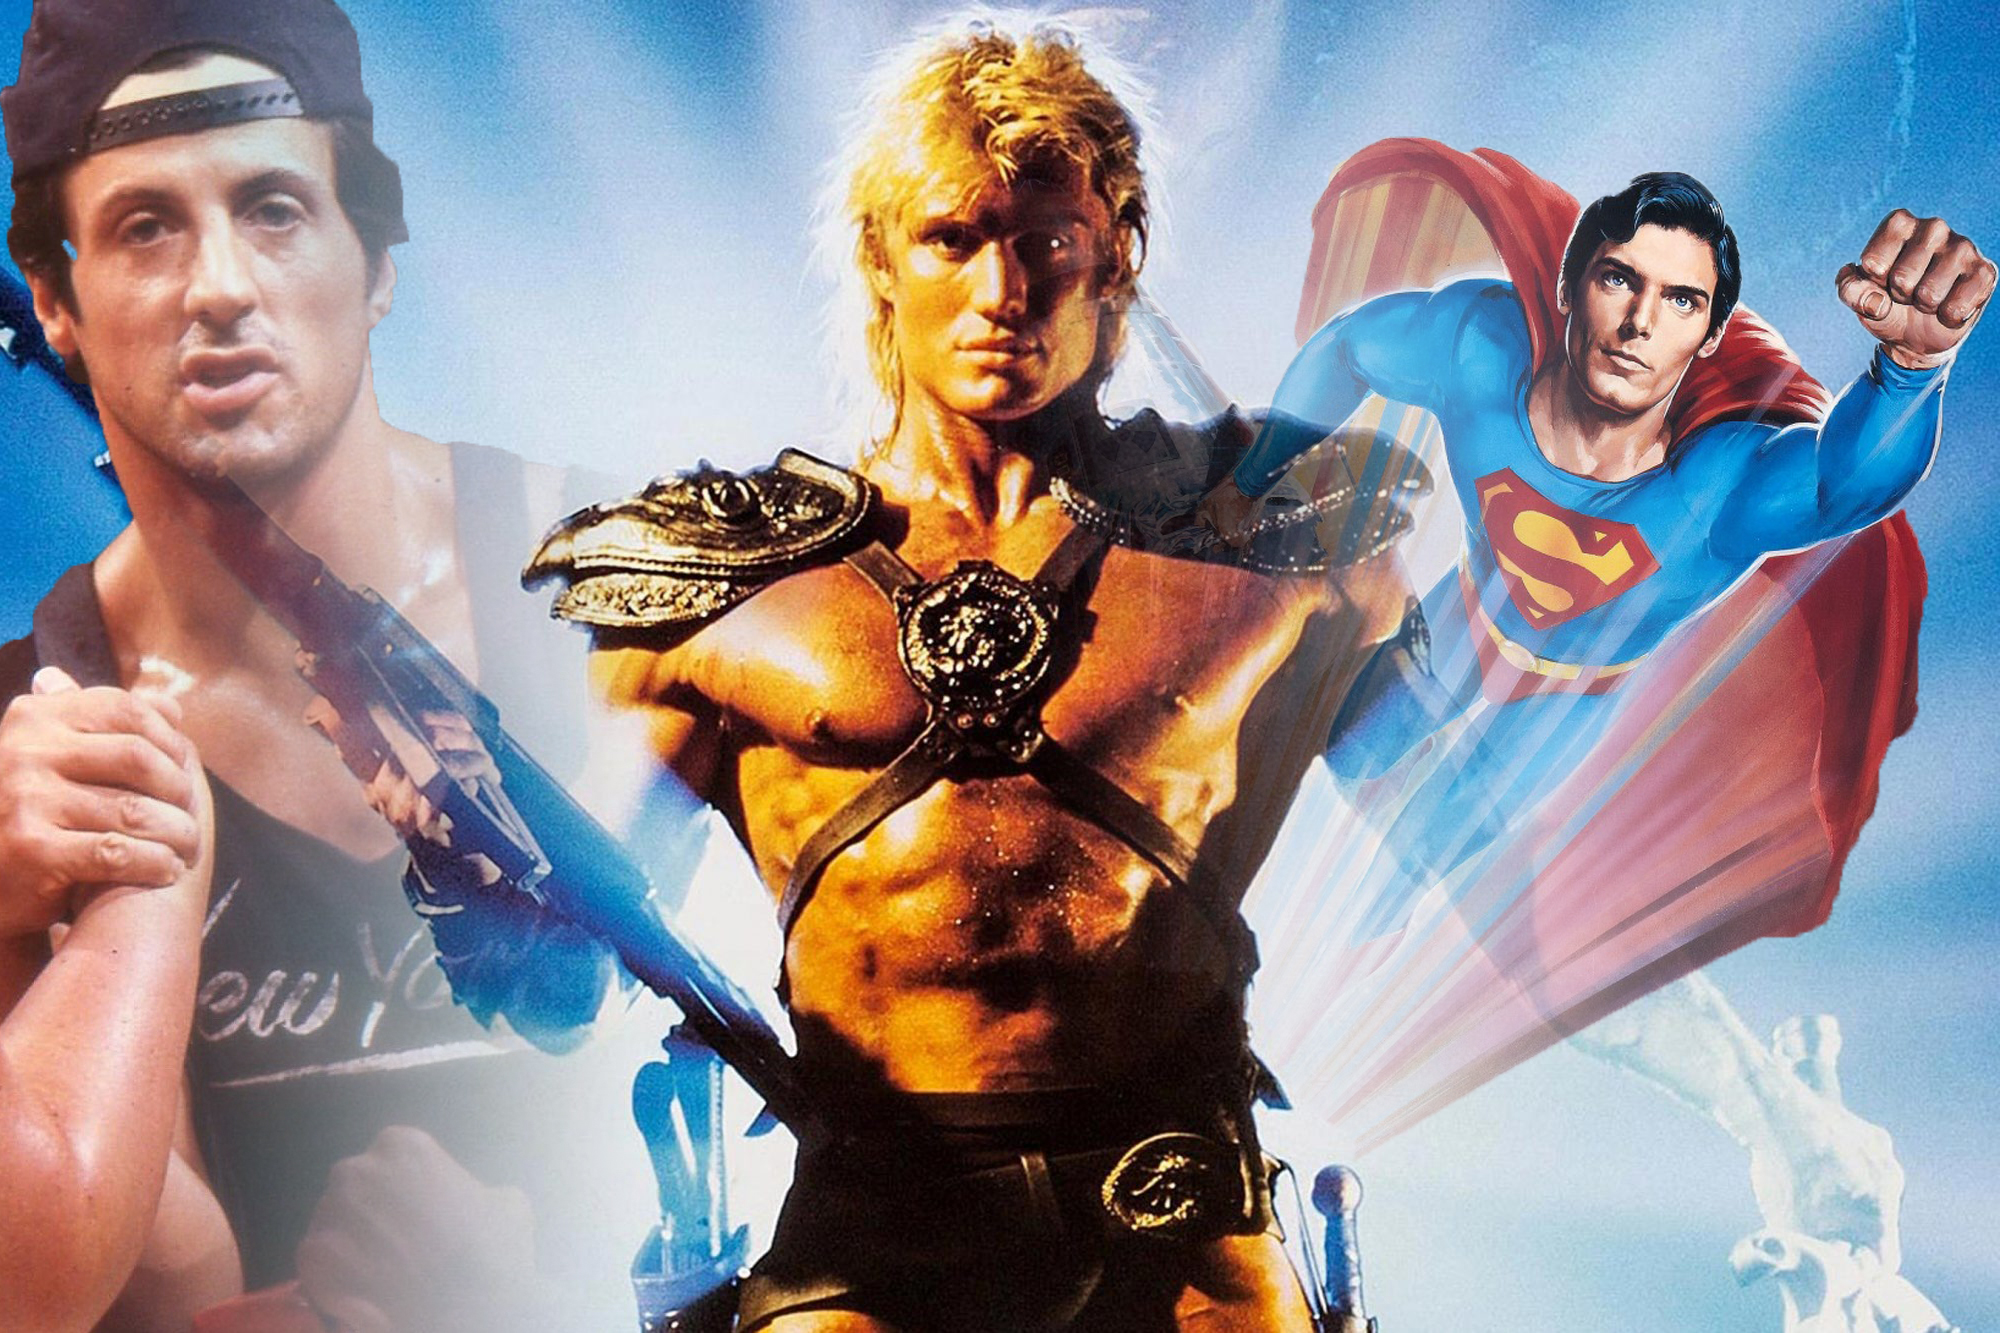 Podtoid asks which film is worse: Superman IV, Over the Top, or Masters of the Universe? screenshot